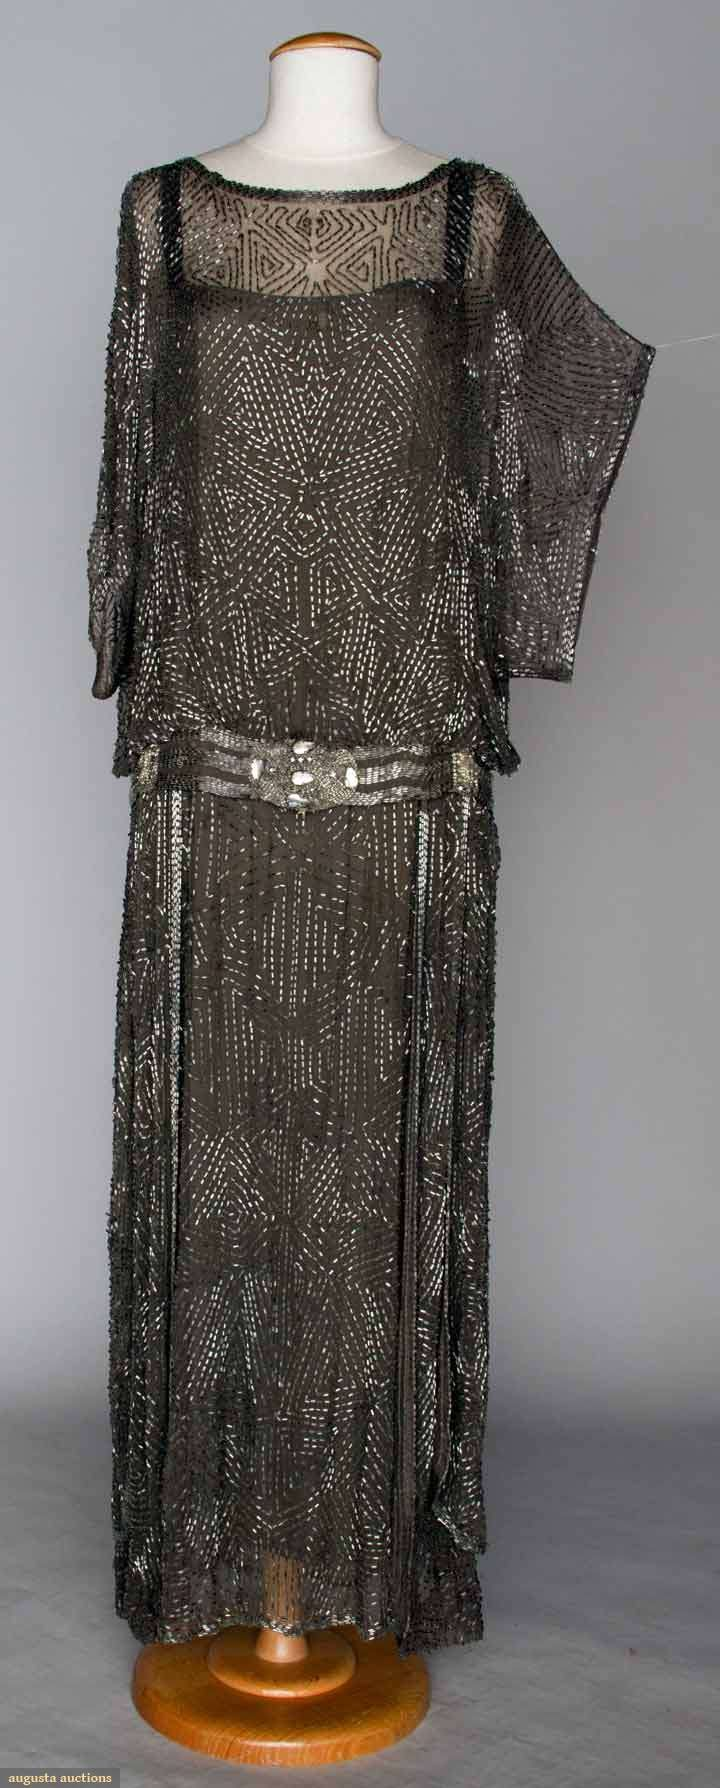 Augusta Auctions, April 17, 2013 - NEW YORK CITY: Silver Beaded Dress, 1920s